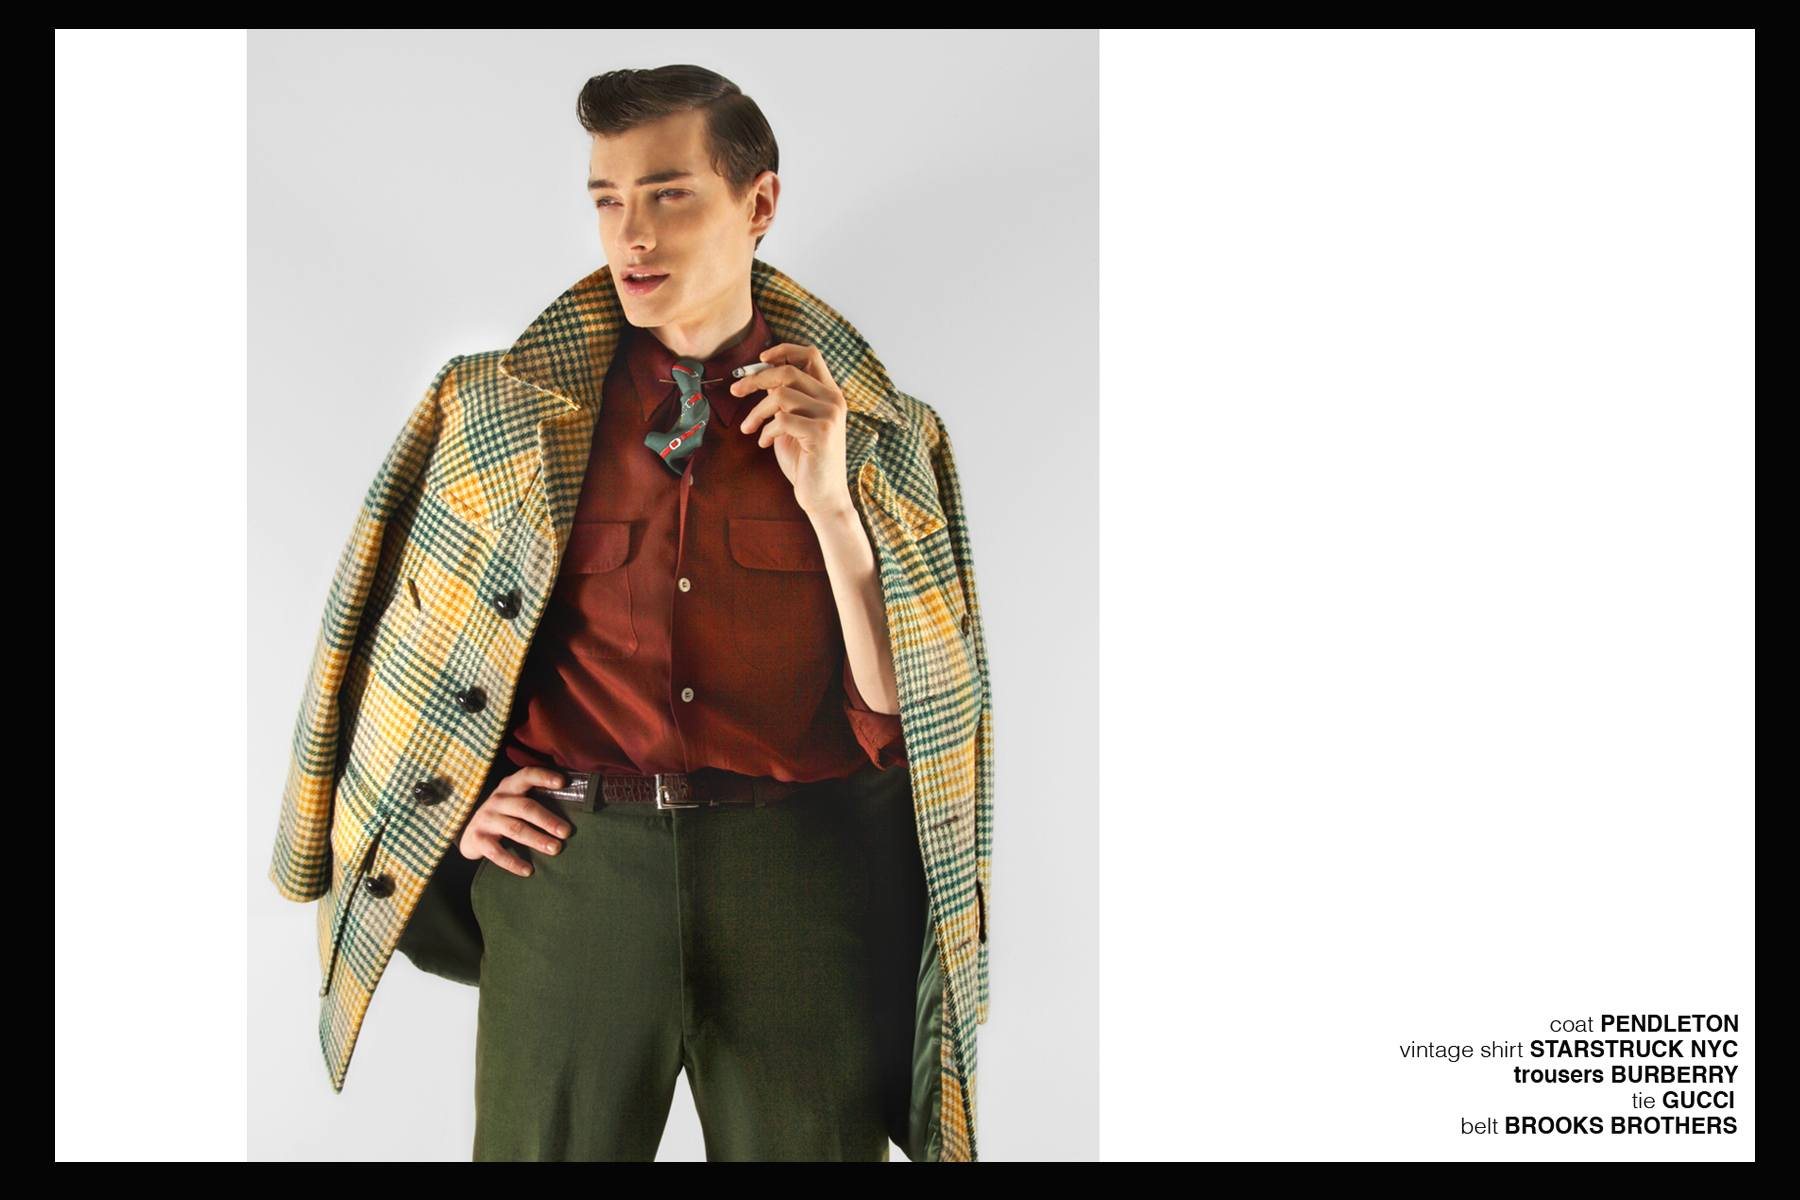 Branko in Pendleton, Burberry, Gucci and Brooks Brothers for Ponyboy Magazine, photographed by Alexander Thompson.